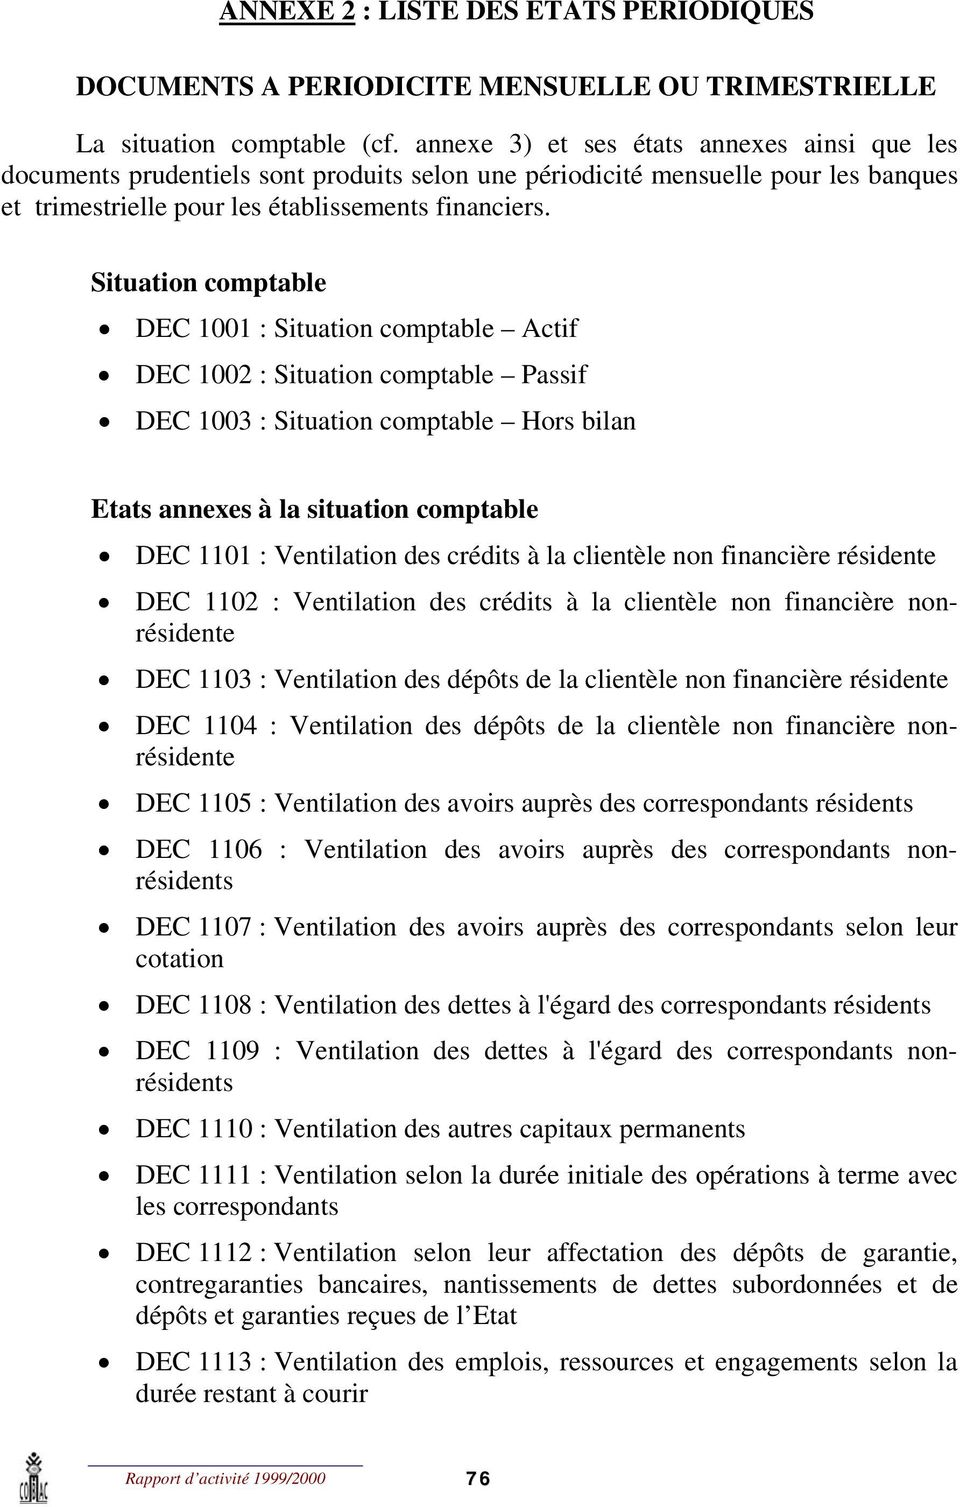 Situation comptable DEC 1001 : Situation comptable Actif DEC 1002 : Situation comptable Passif DEC 1003 : Situation comptable Hors bilan Etats annexes à la situation comptable DEC 1101 : Ventilation